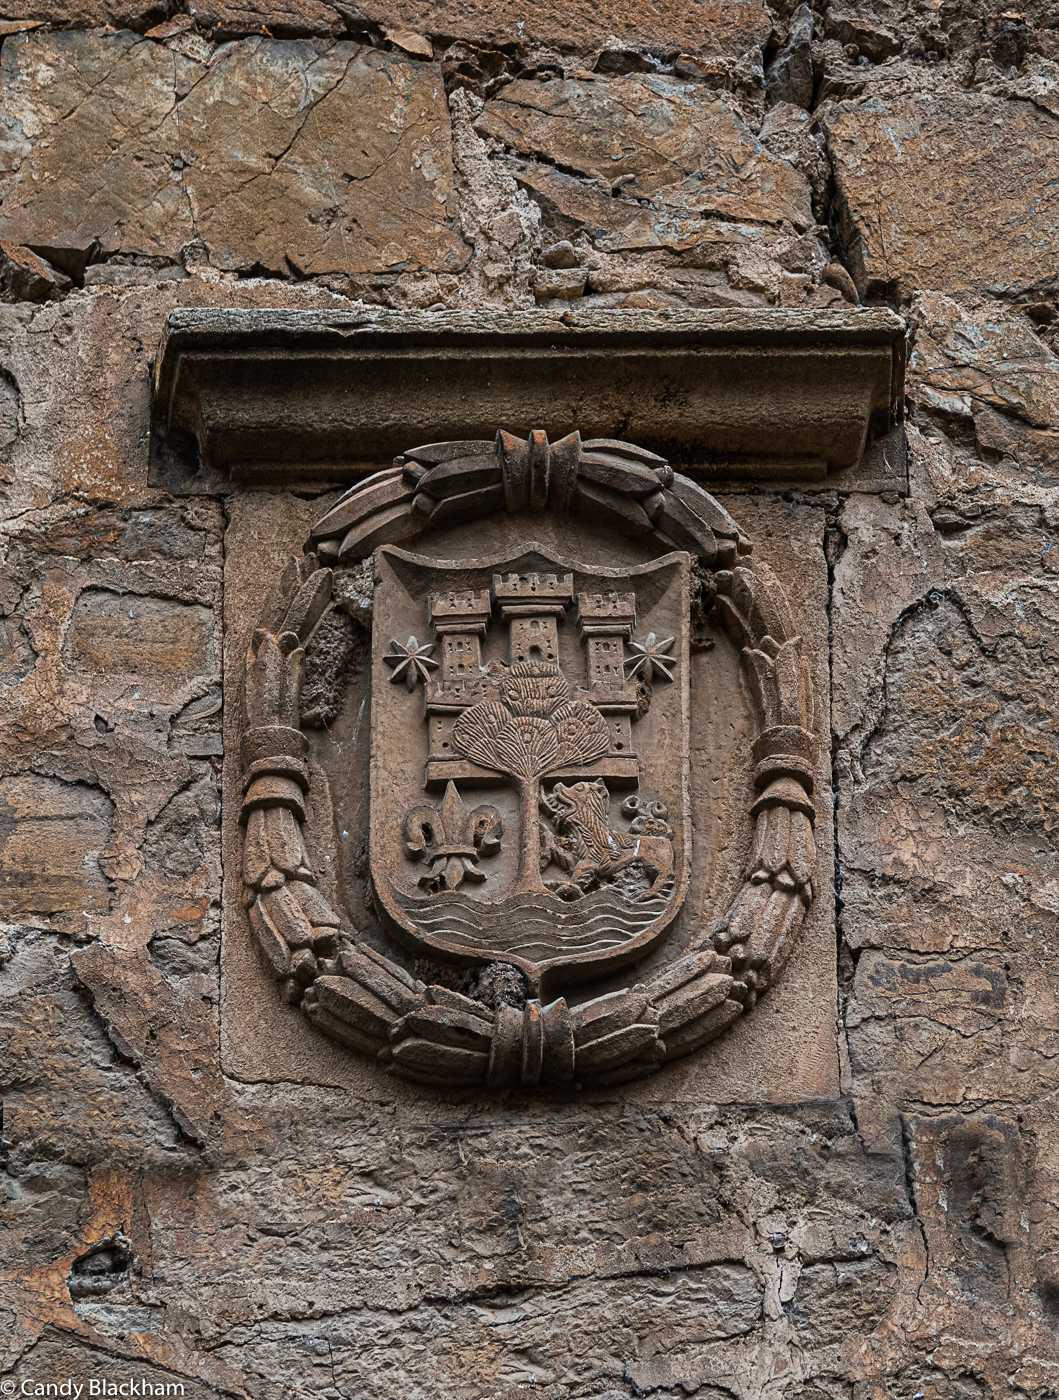 Coat of Arms on the Oregon de la Lama Tower